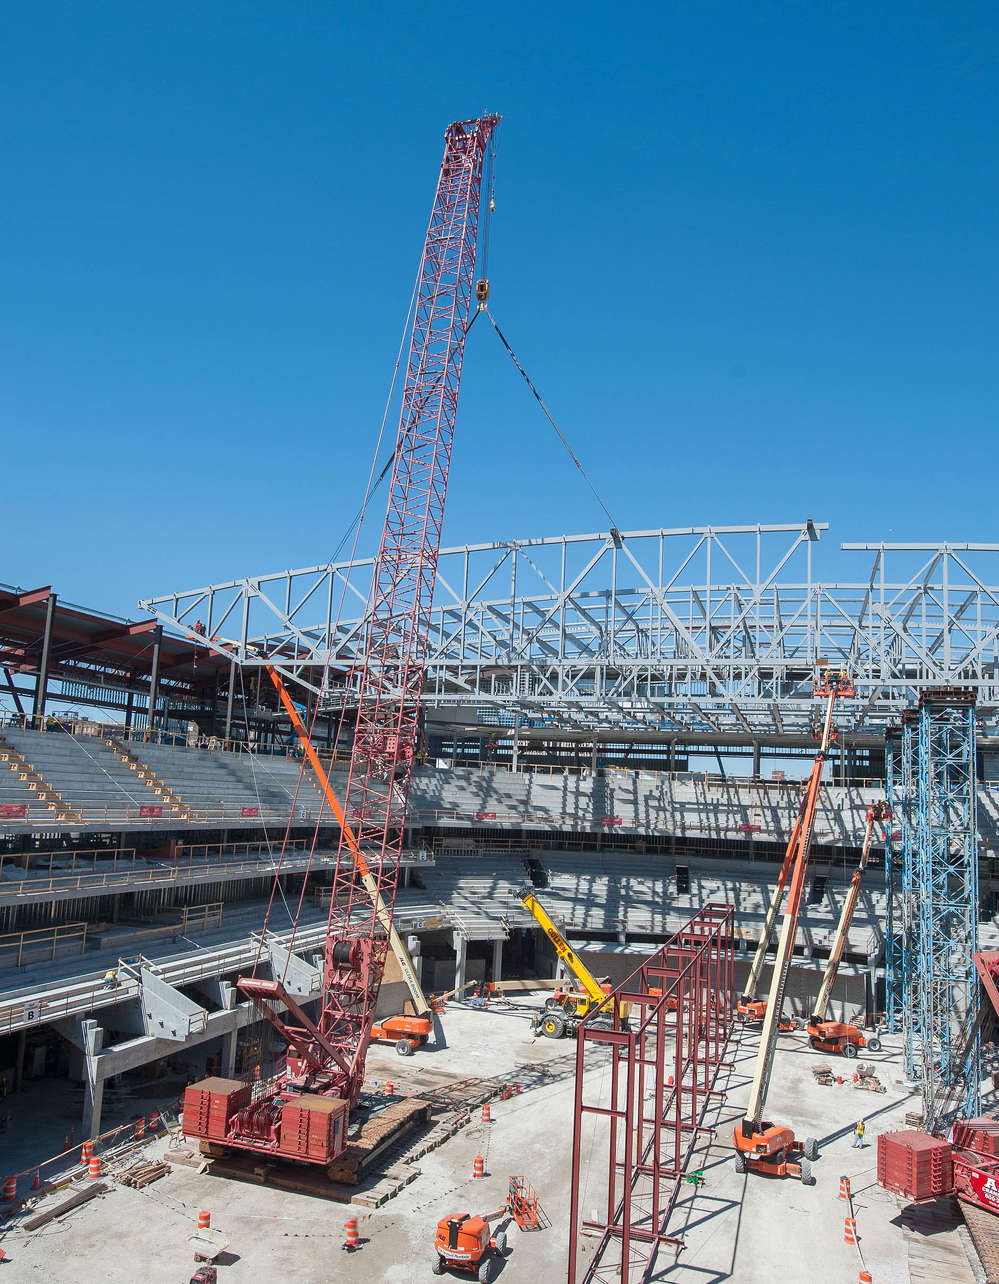 Construction of a new $524 million, multi-purpose arena is under way in downtown Milwaukee, and a fleet of Manitowoc crawler cranes is handling its most crucial lifting work.